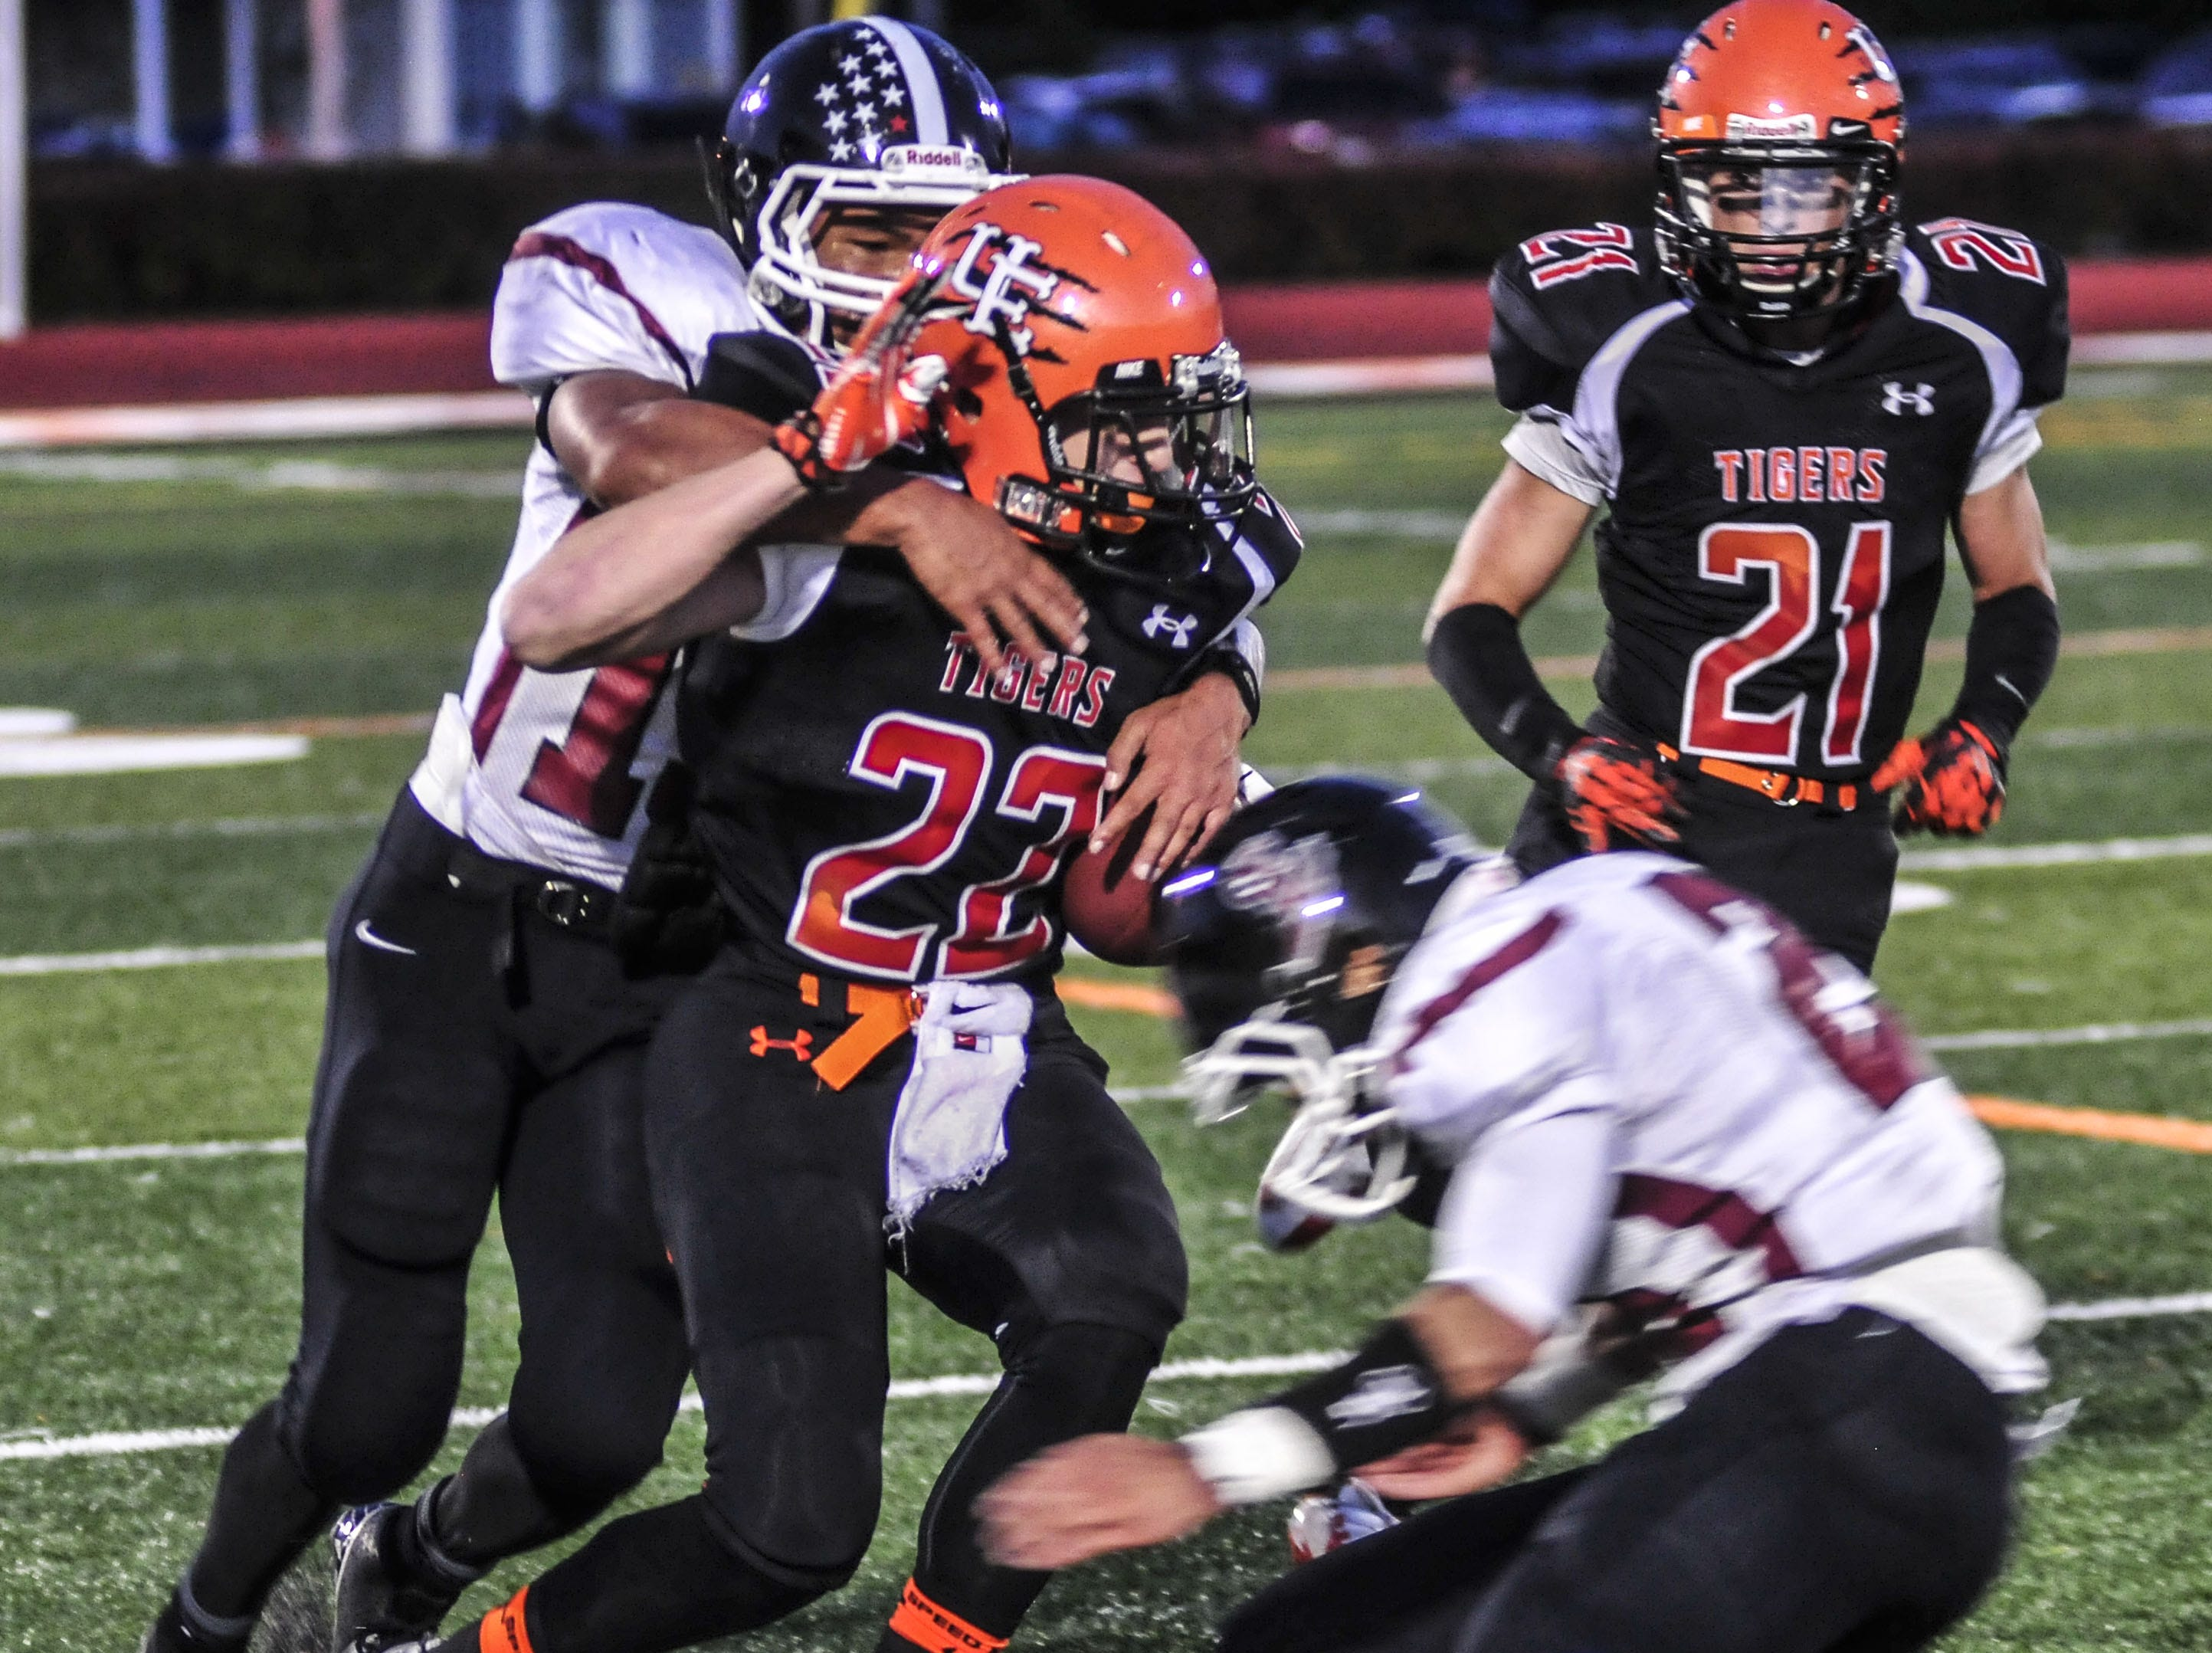 Union-Endicott's C.J. Krowiak is tackled by Elmira's Jerry McPeak, left, and Levi Stevenson in 2013. Krowiak had 140 yards receiving and two TDs.